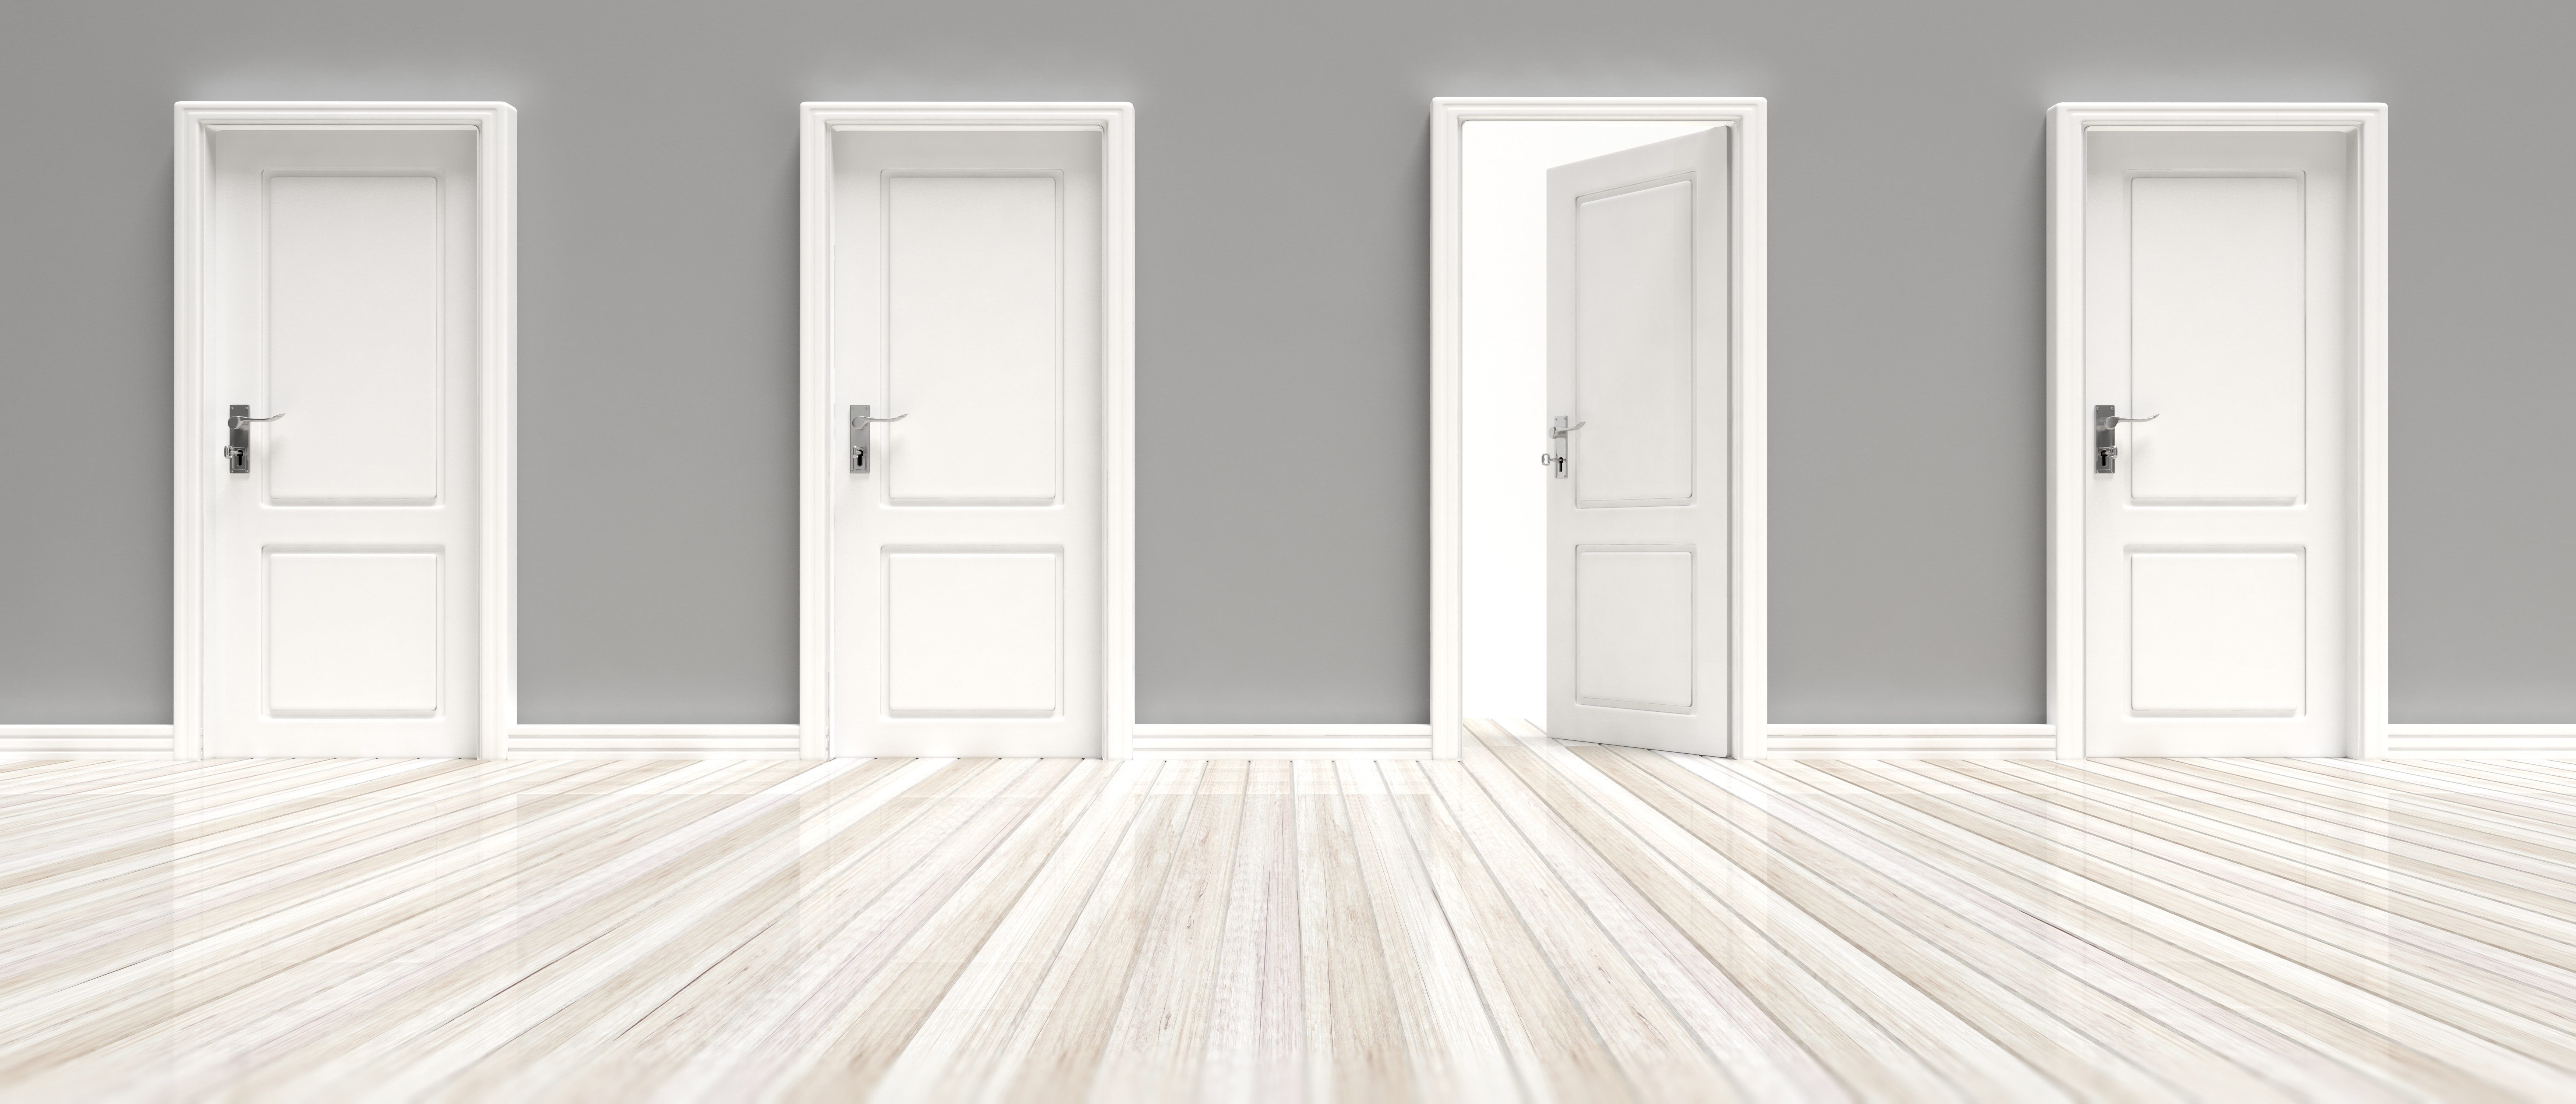 closed-and-open-doors-on-grey-wall-and-white-woode-VMAK5SY